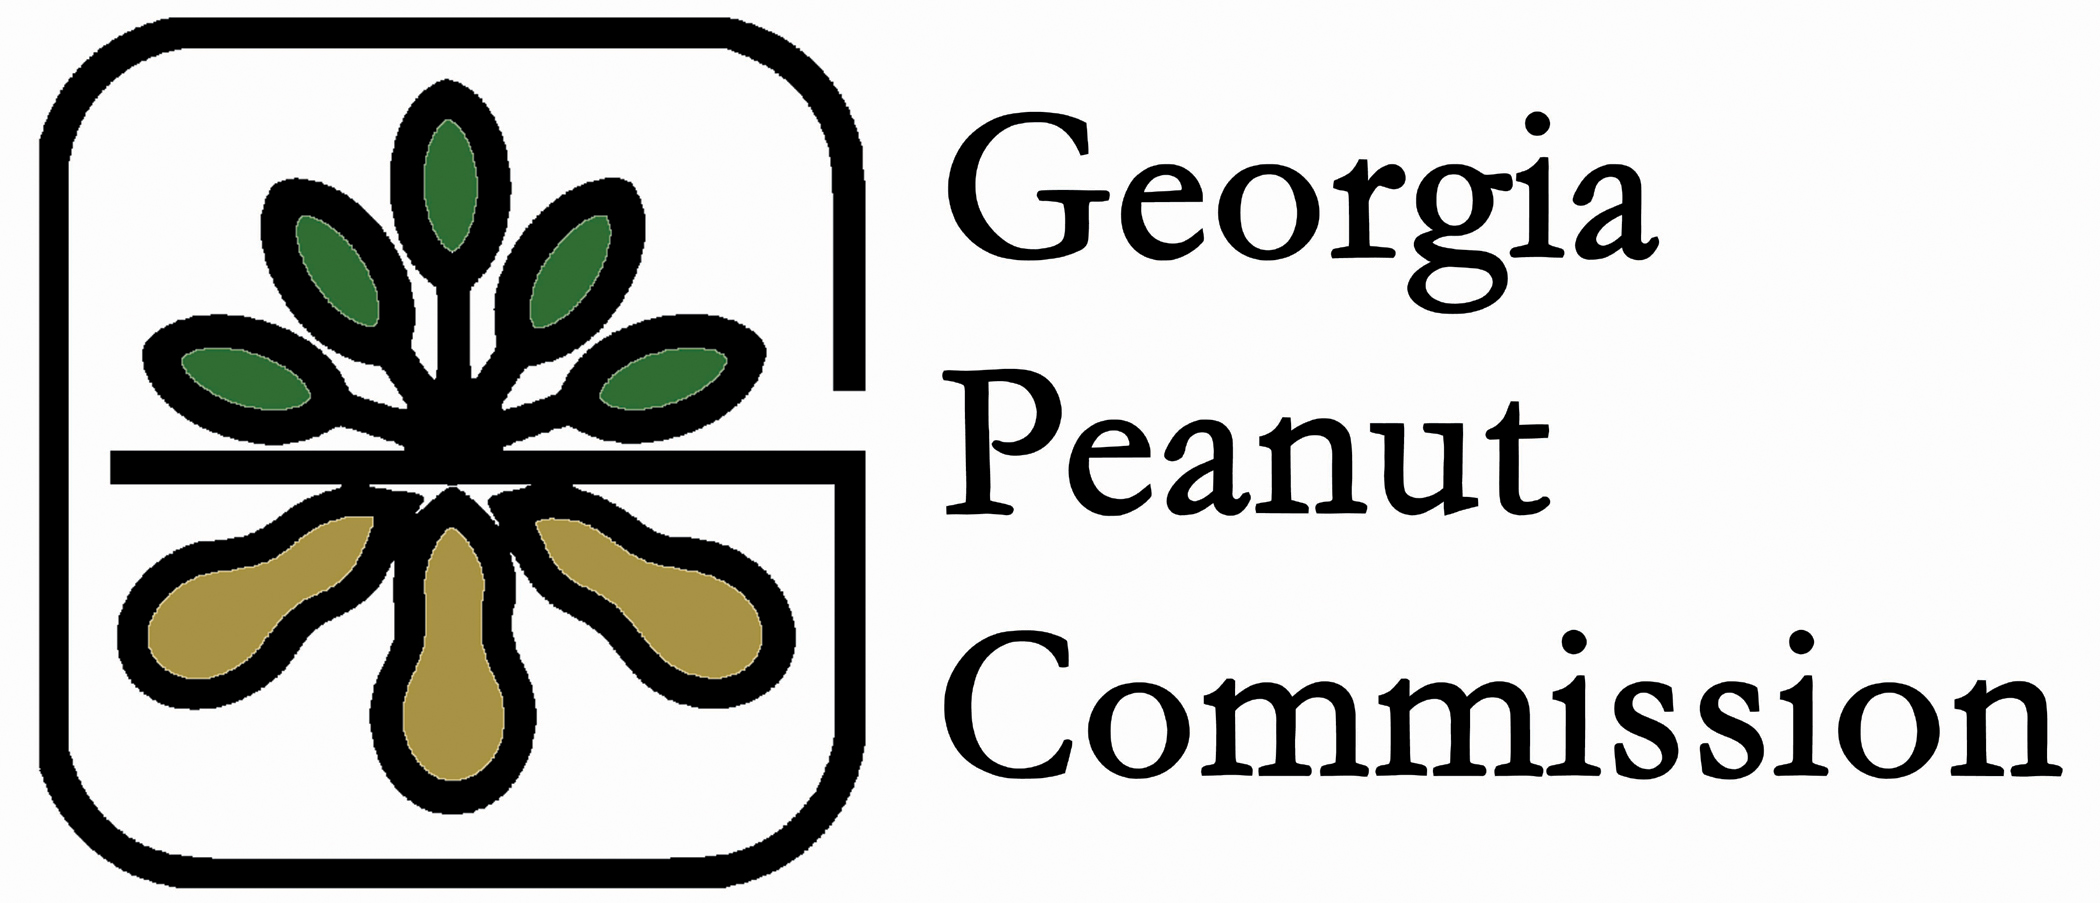 Georgia Peanut Commission